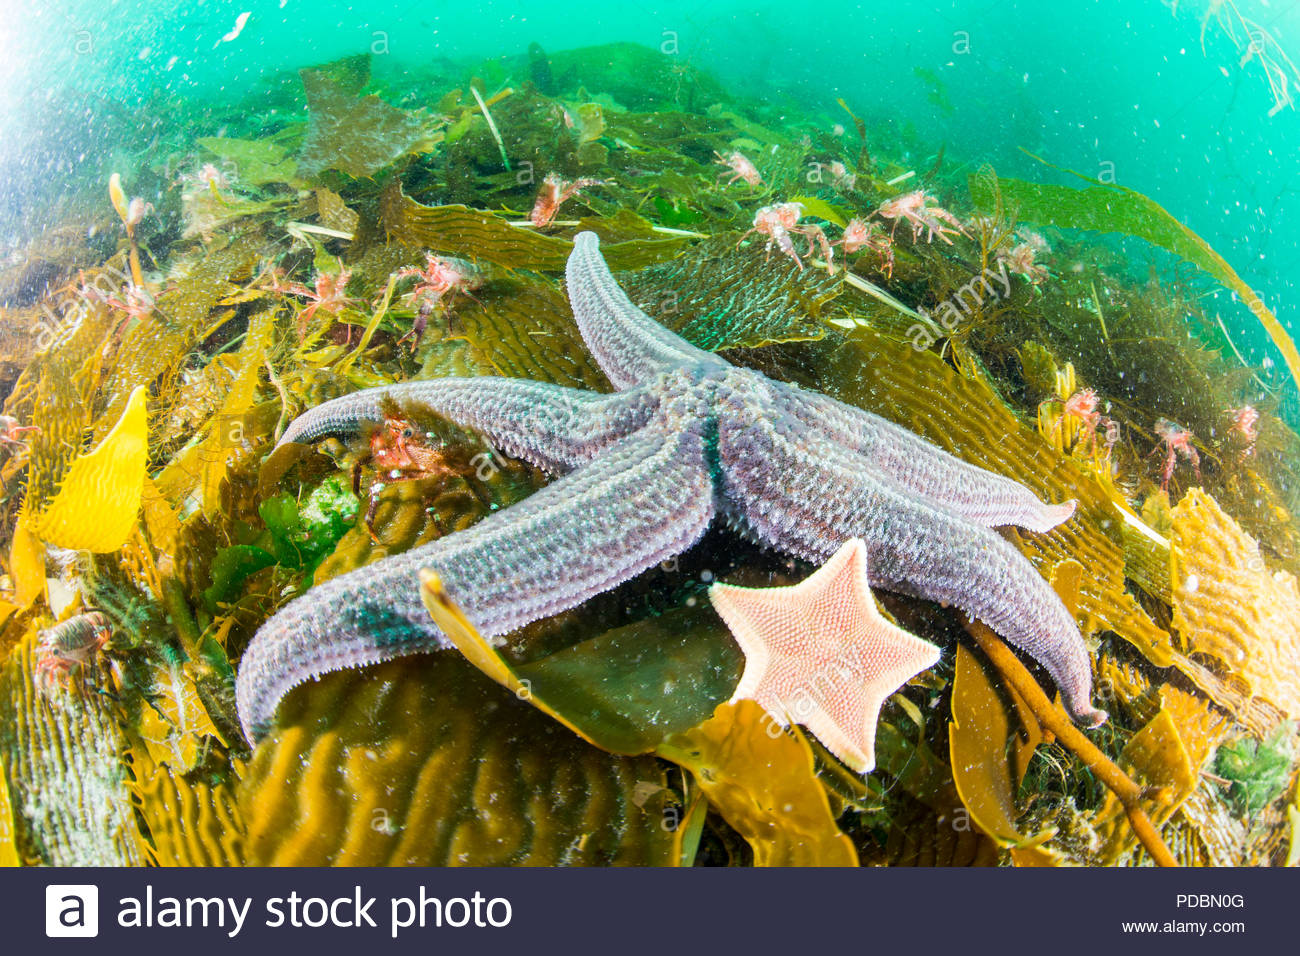 Lobster krill and starfish on the seafloor off of Arch Island. - Stock Image